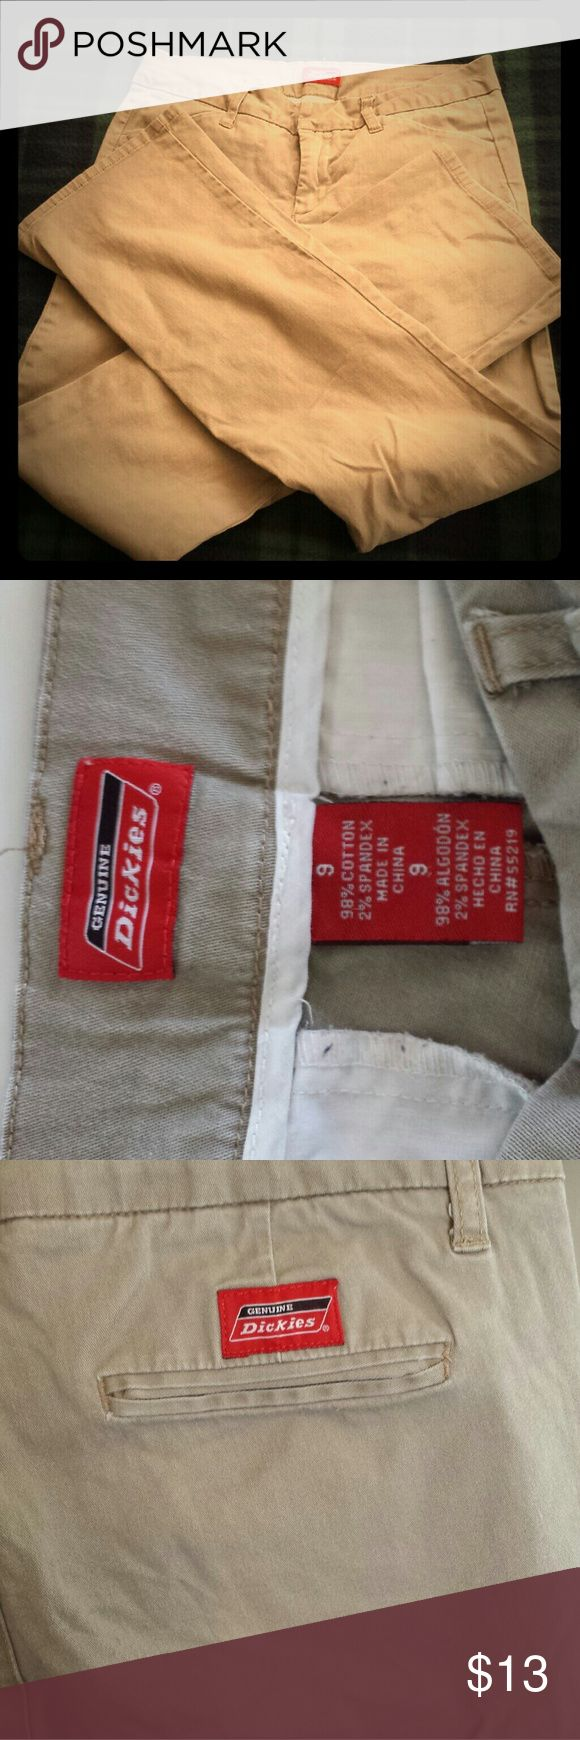 SALE! Girl's Dickies Khaki Pants size 9 Junior Excellent shape! No wearing! No stains or tears or fraying. Great for school uniforms! Dickies Pants